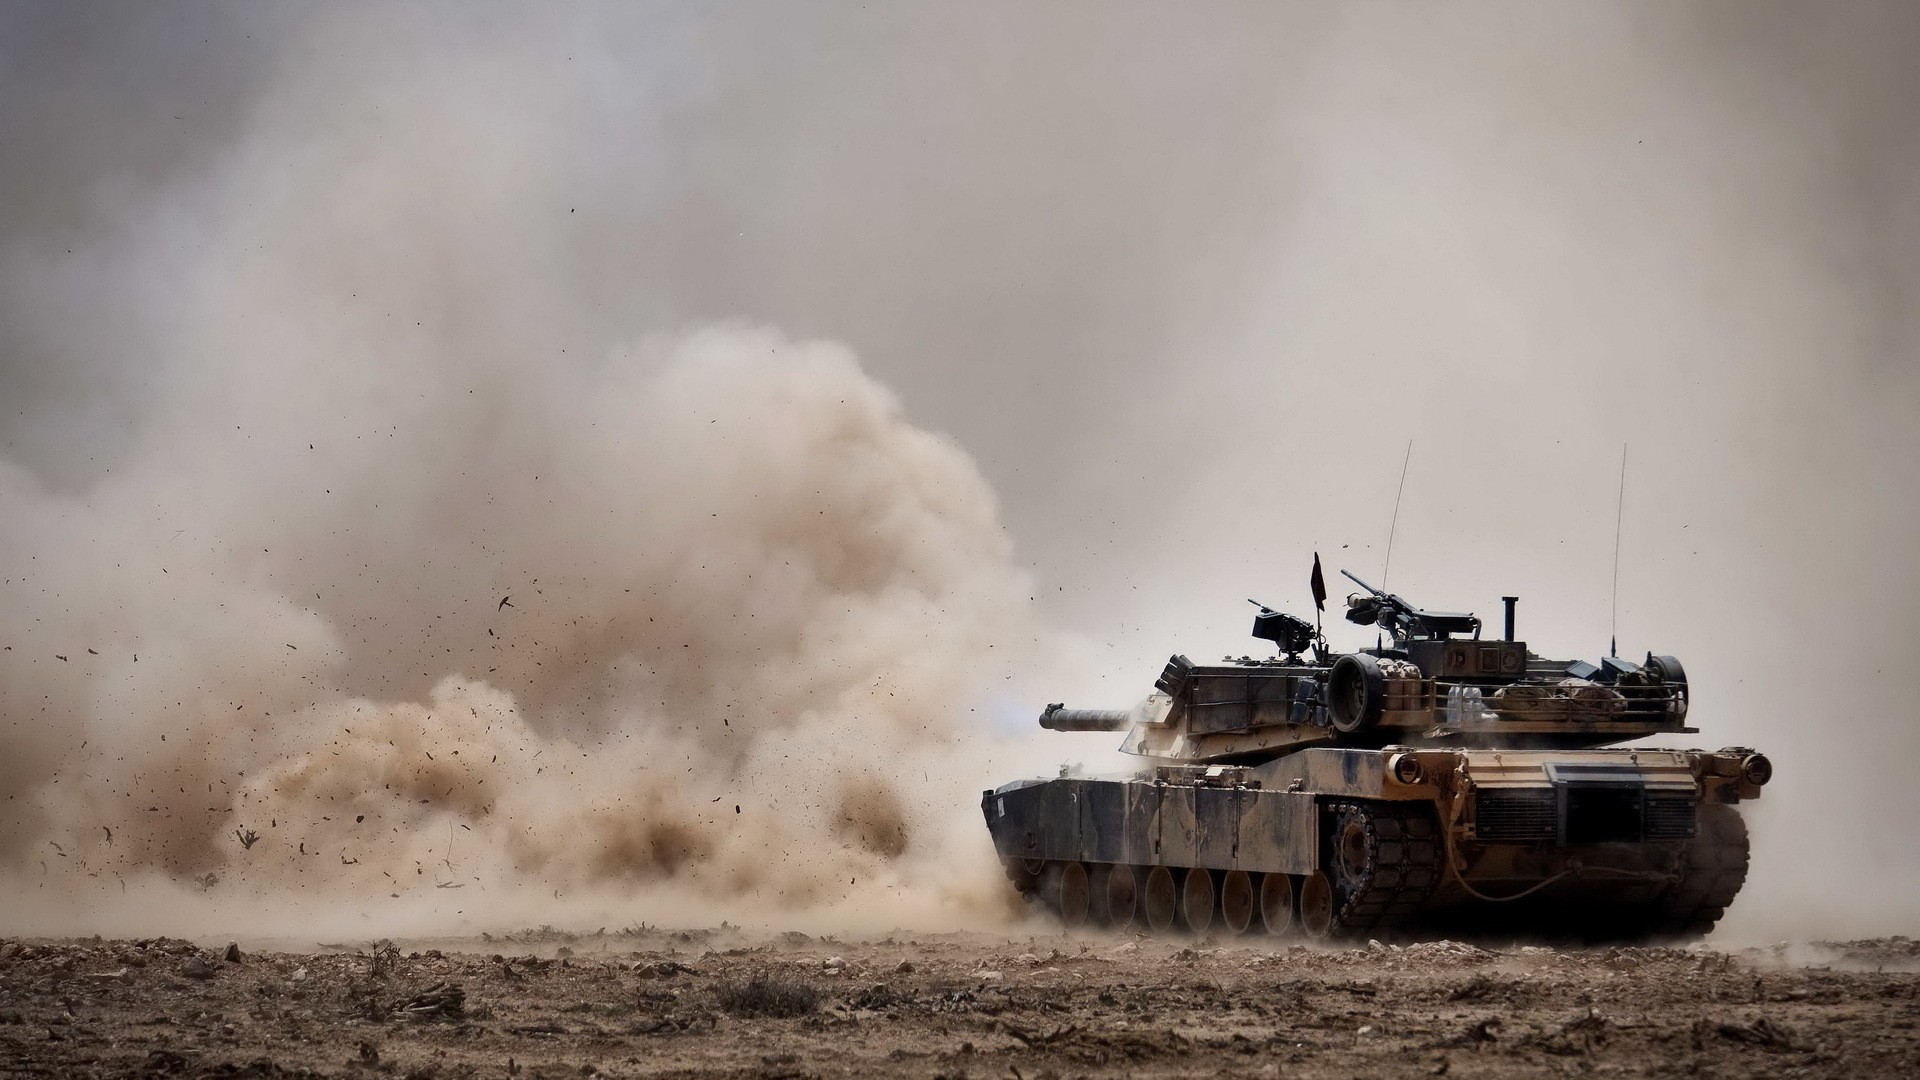 army tank wallpapers in hd for free download army tank wallpapers in hd for free